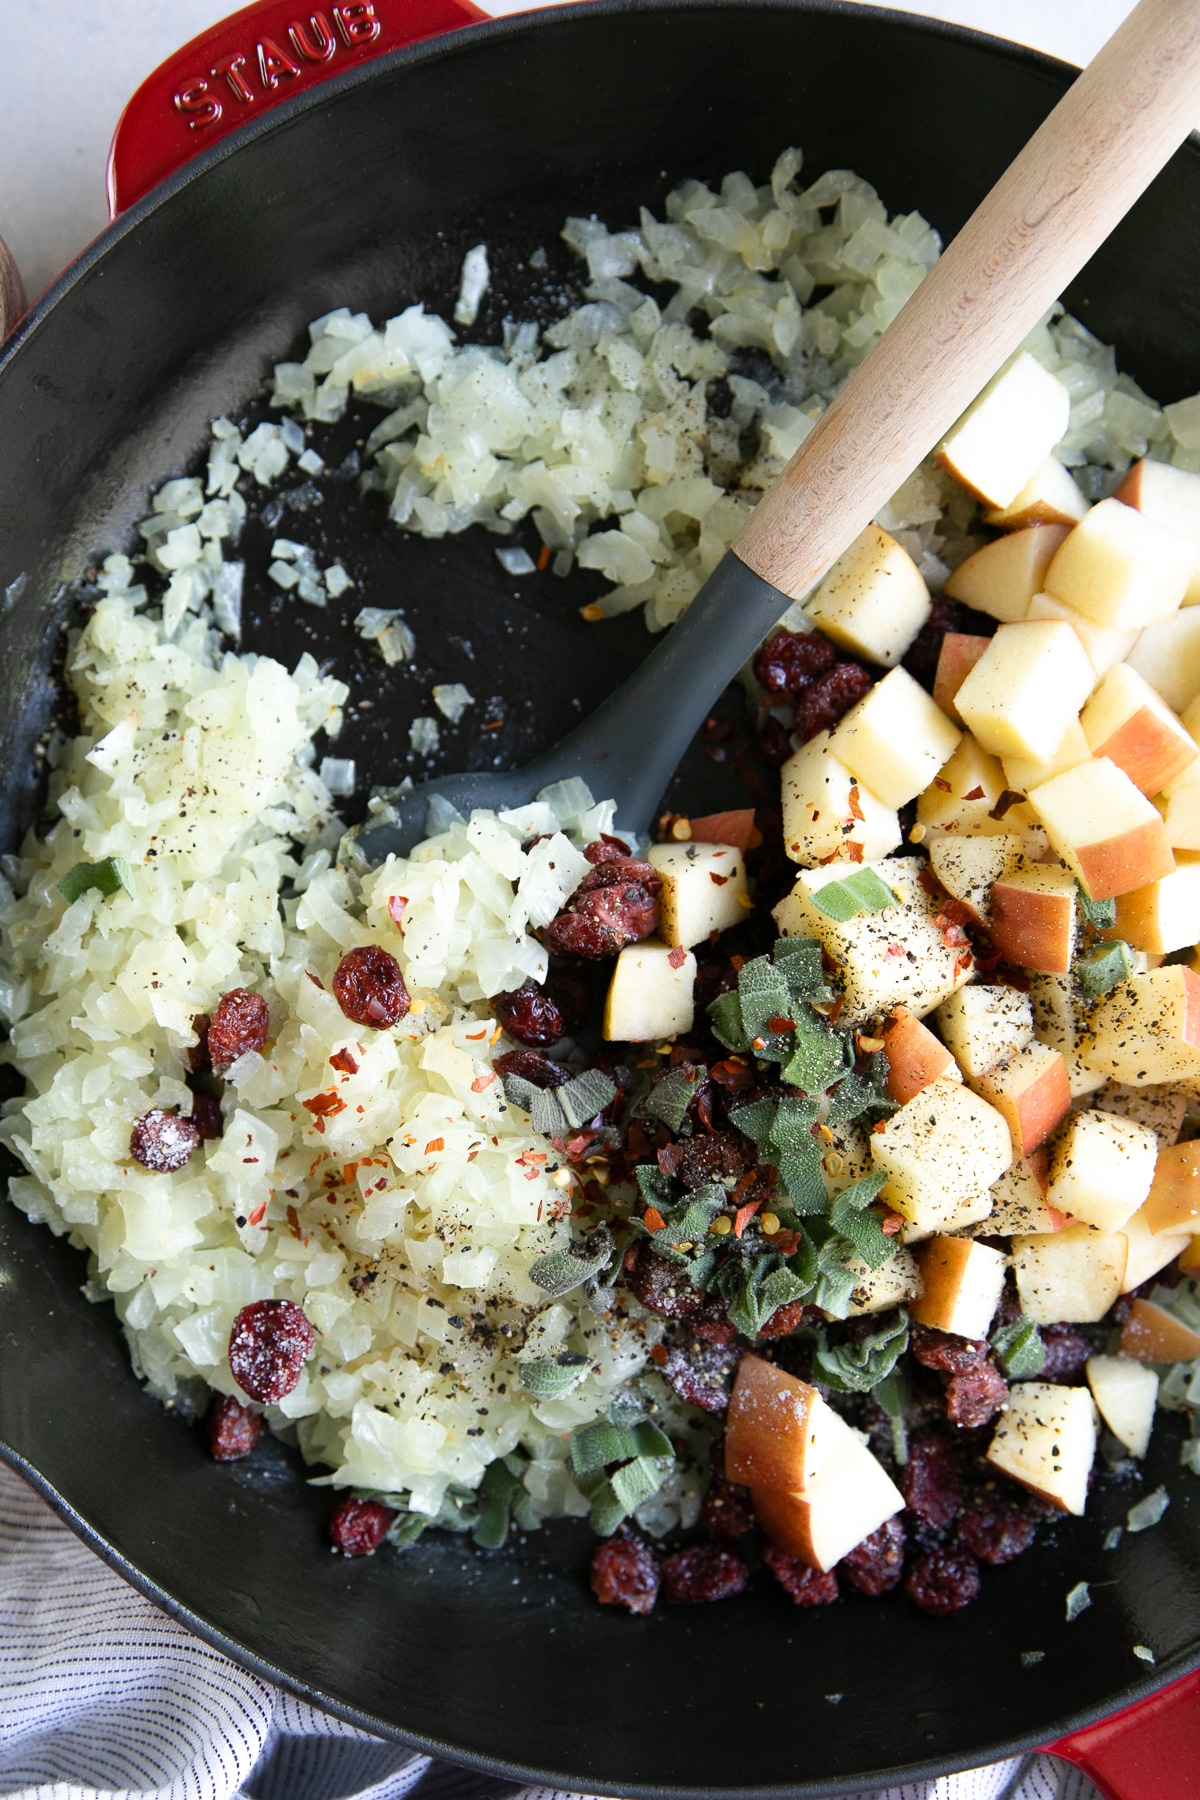 Skillet filled with sauteed onions, apples, sage, and dried cranberries.